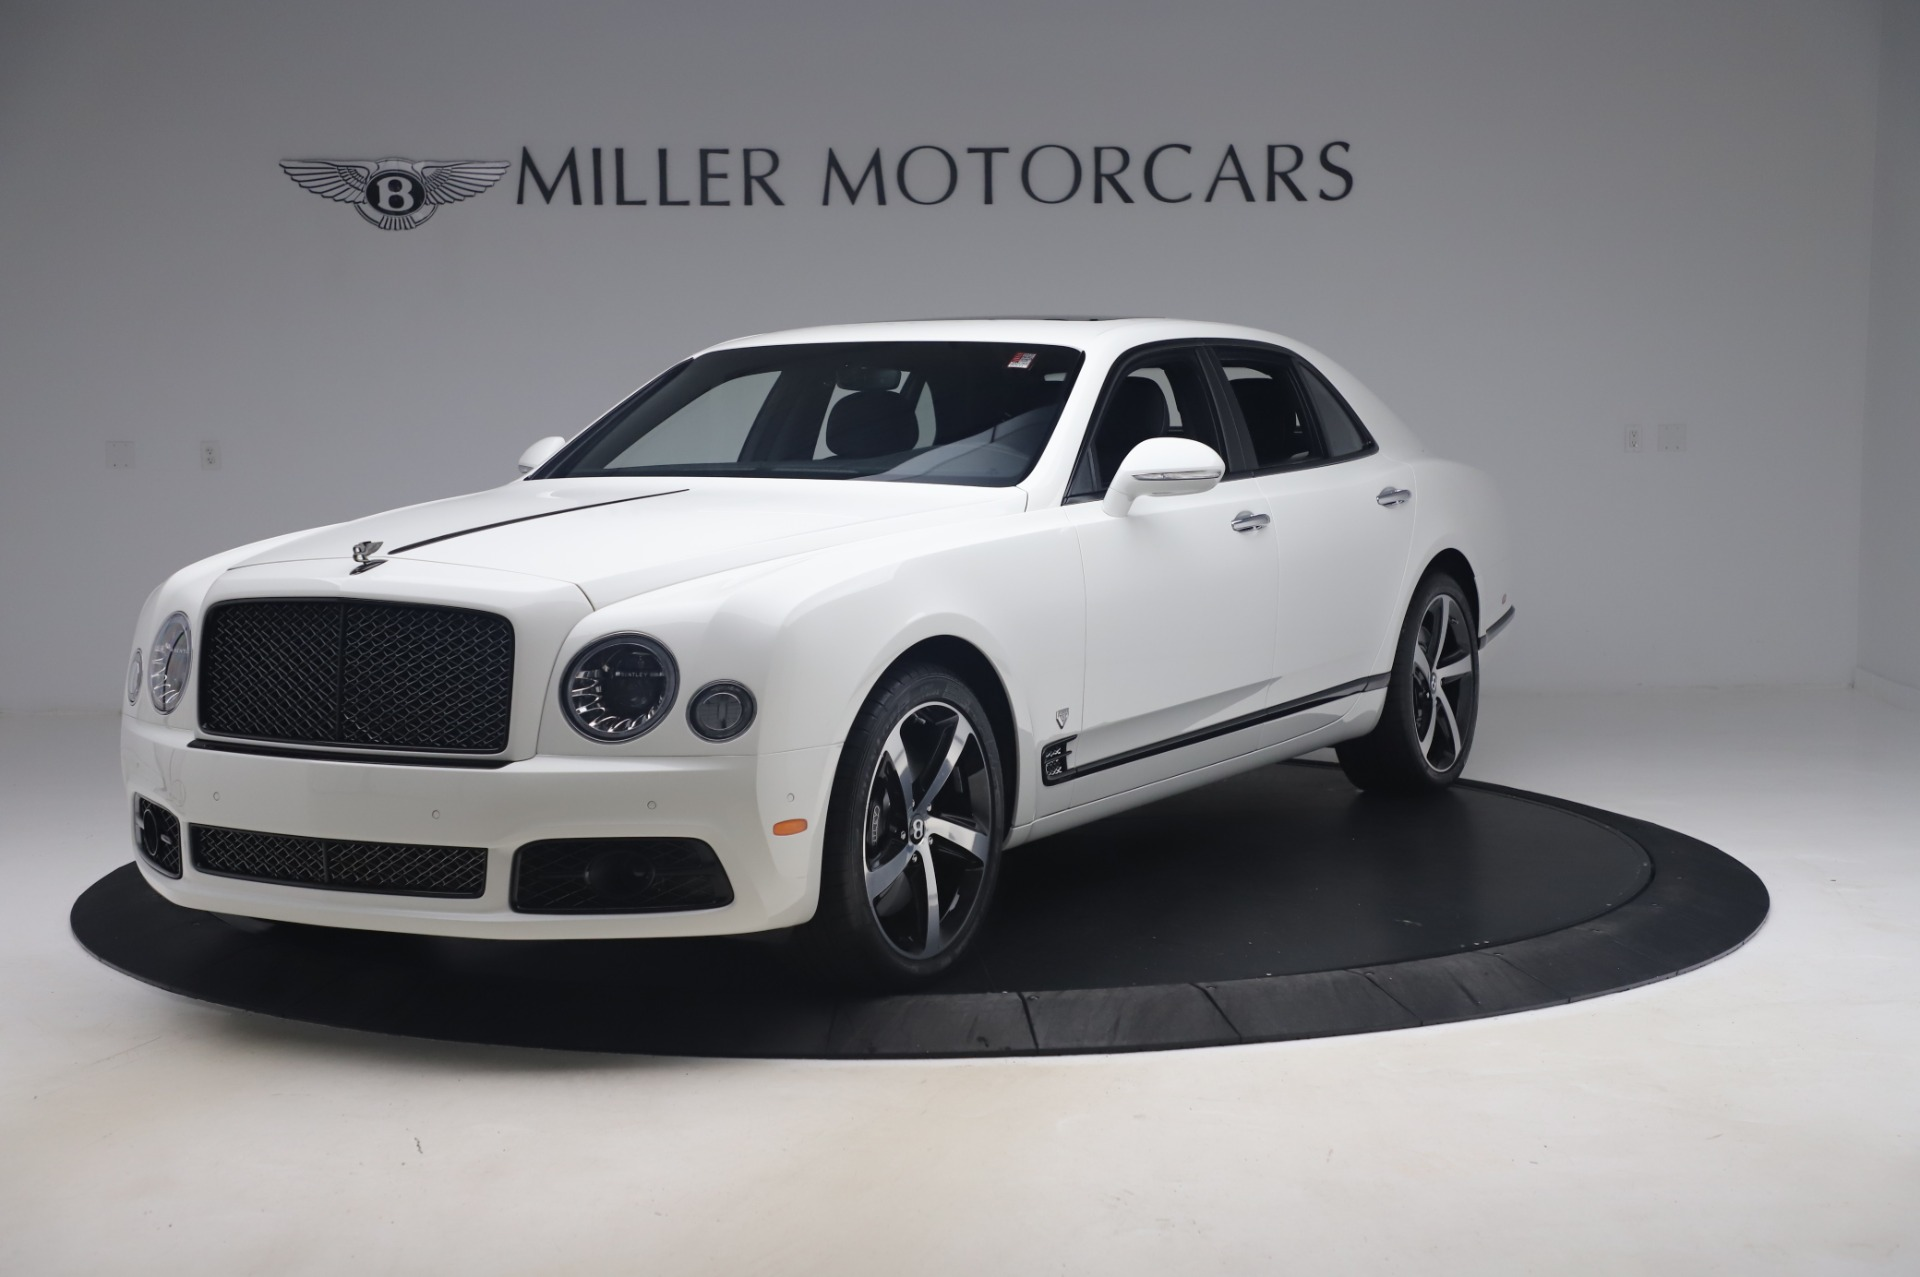 New 2020 Bentley Mulsanne 6.75 Edition by Mulliner for sale $363,840 at Rolls-Royce Motor Cars Greenwich in Greenwich CT 06830 1